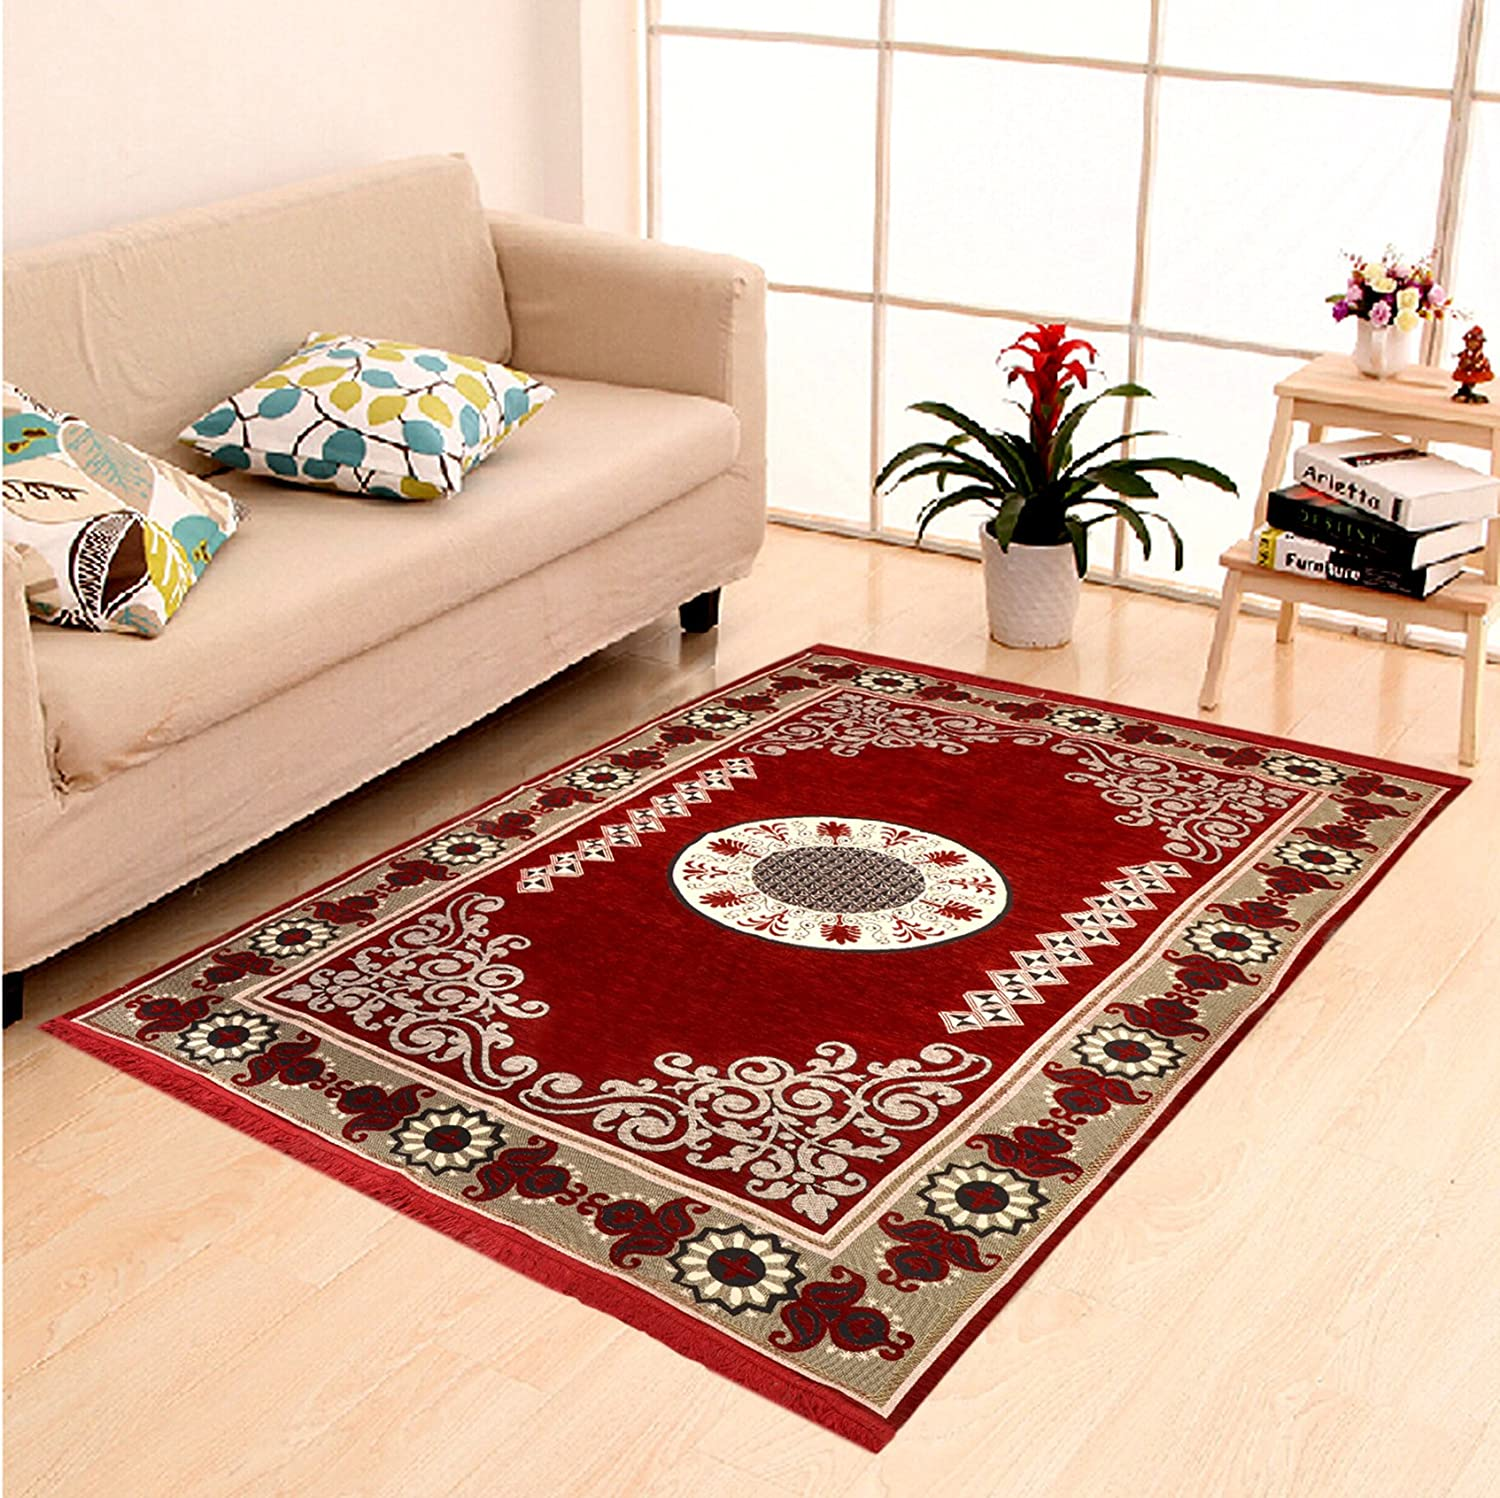 Carpet carpet vidalondon for In home flooring